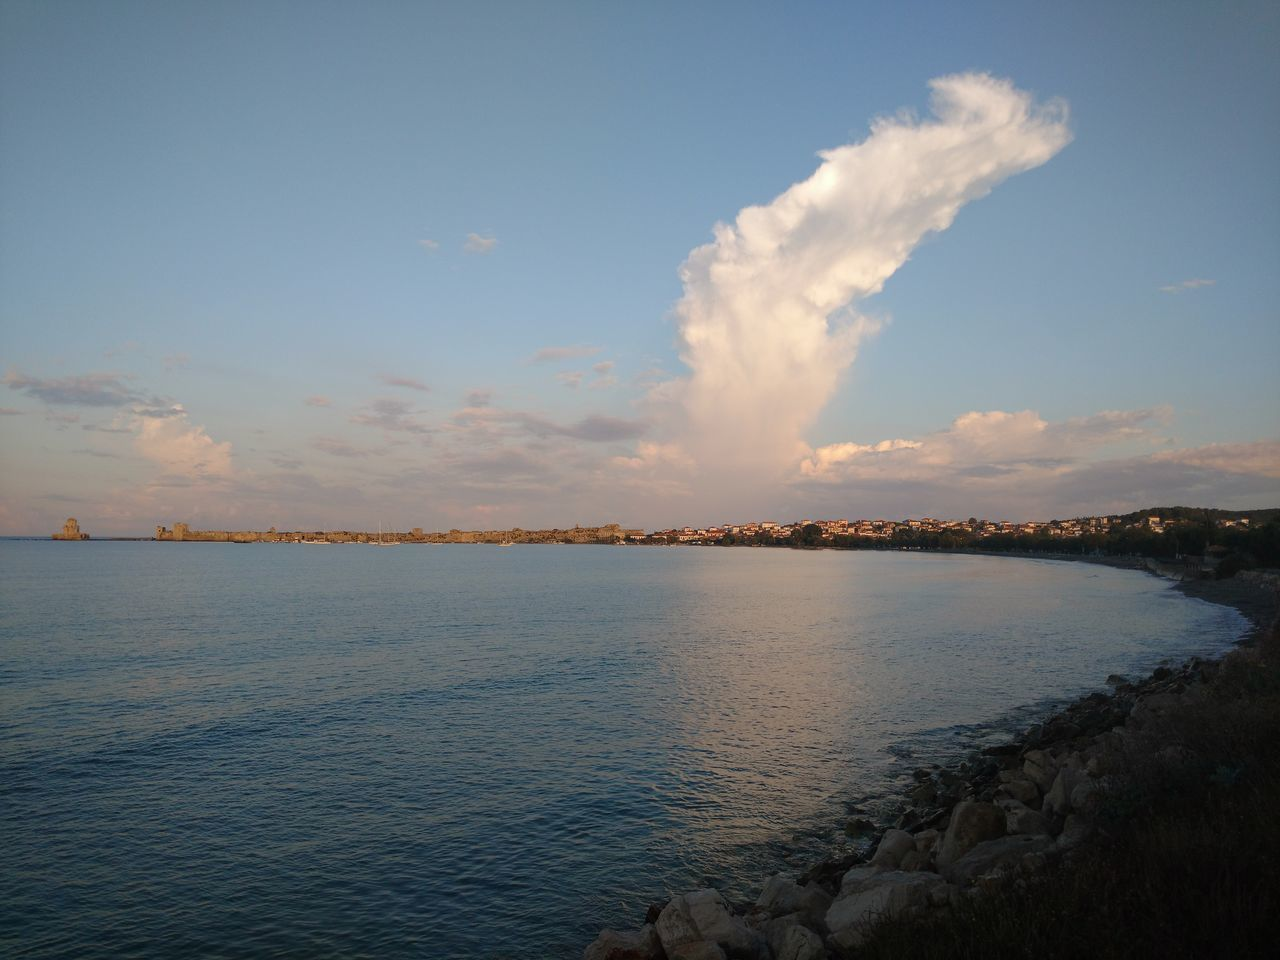 sky, nature, water, tranquility, scenics, no people, beauty in nature, cloud - sky, sea, outdoors, day